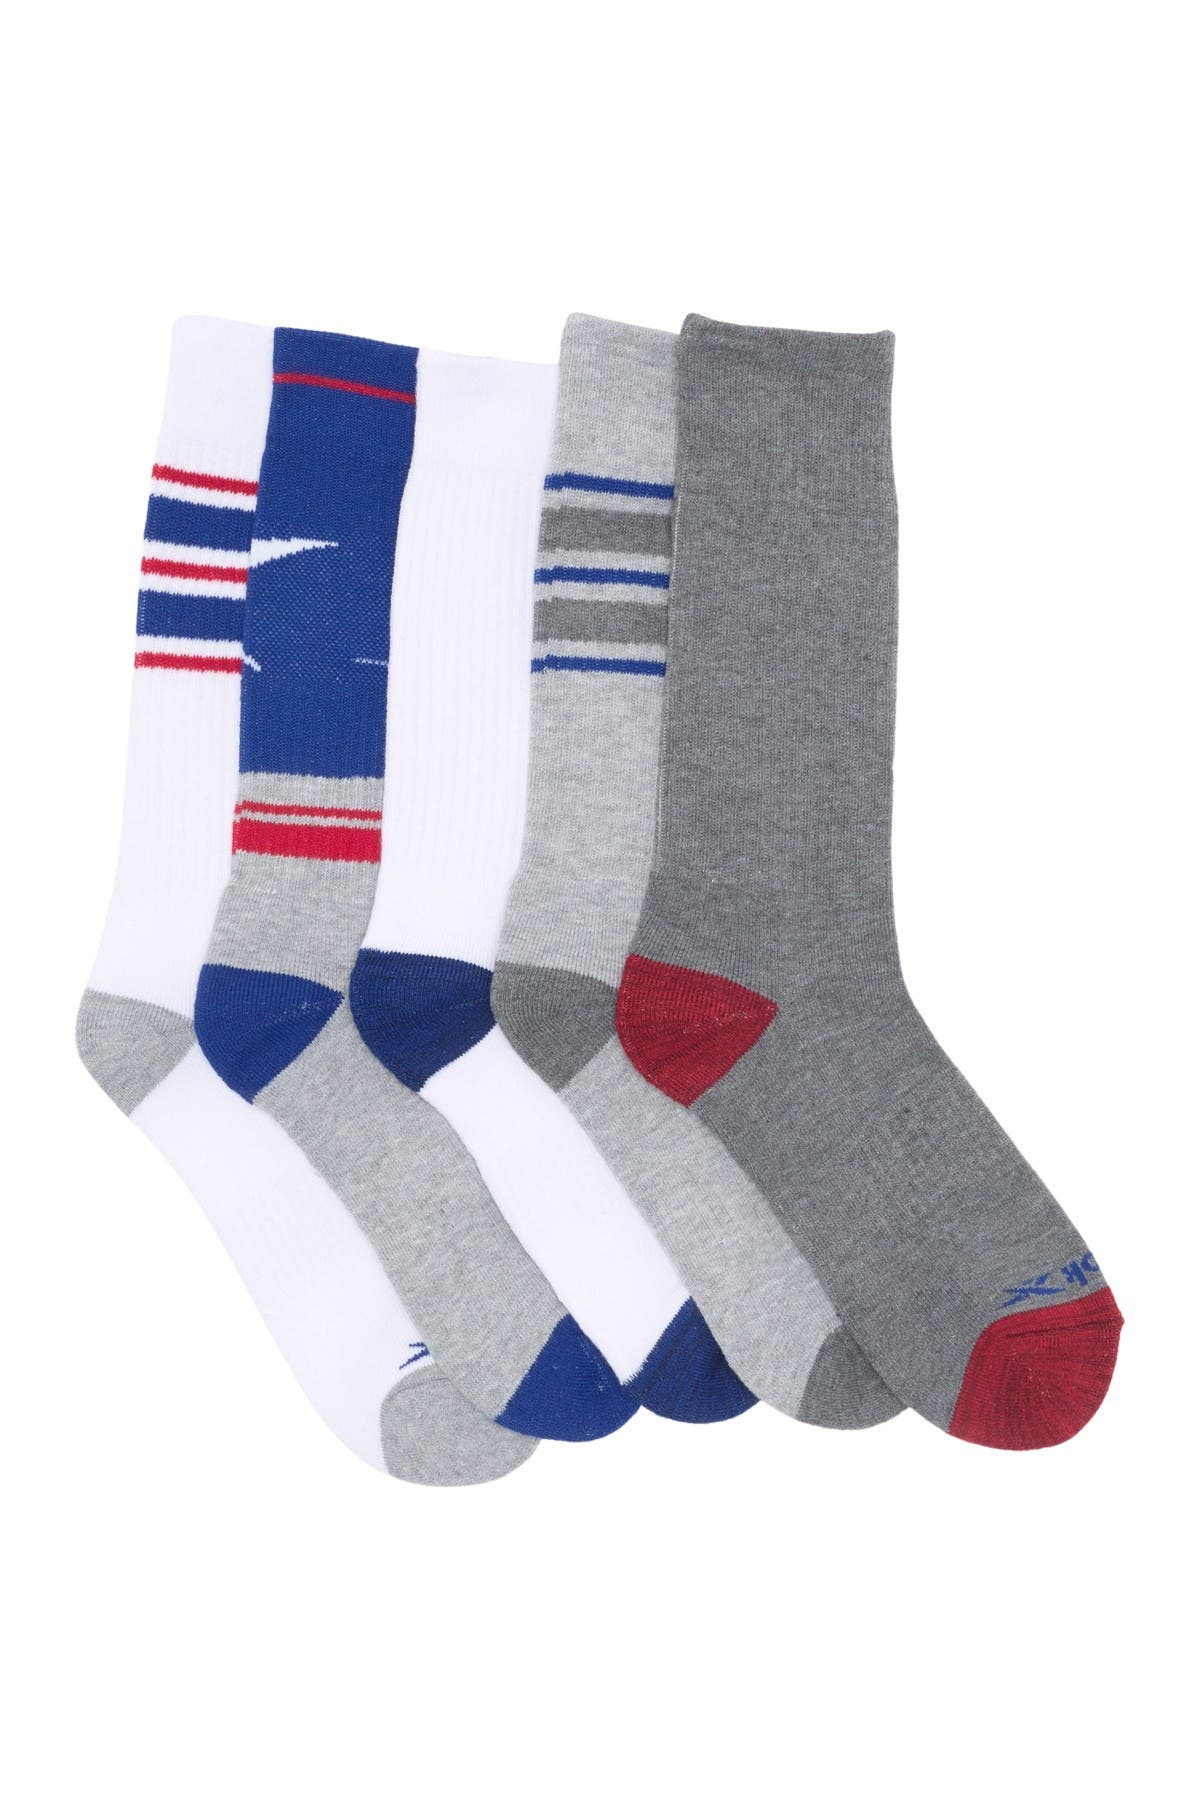 Image of Reebok Assorted Crew Socks - Pack of 5